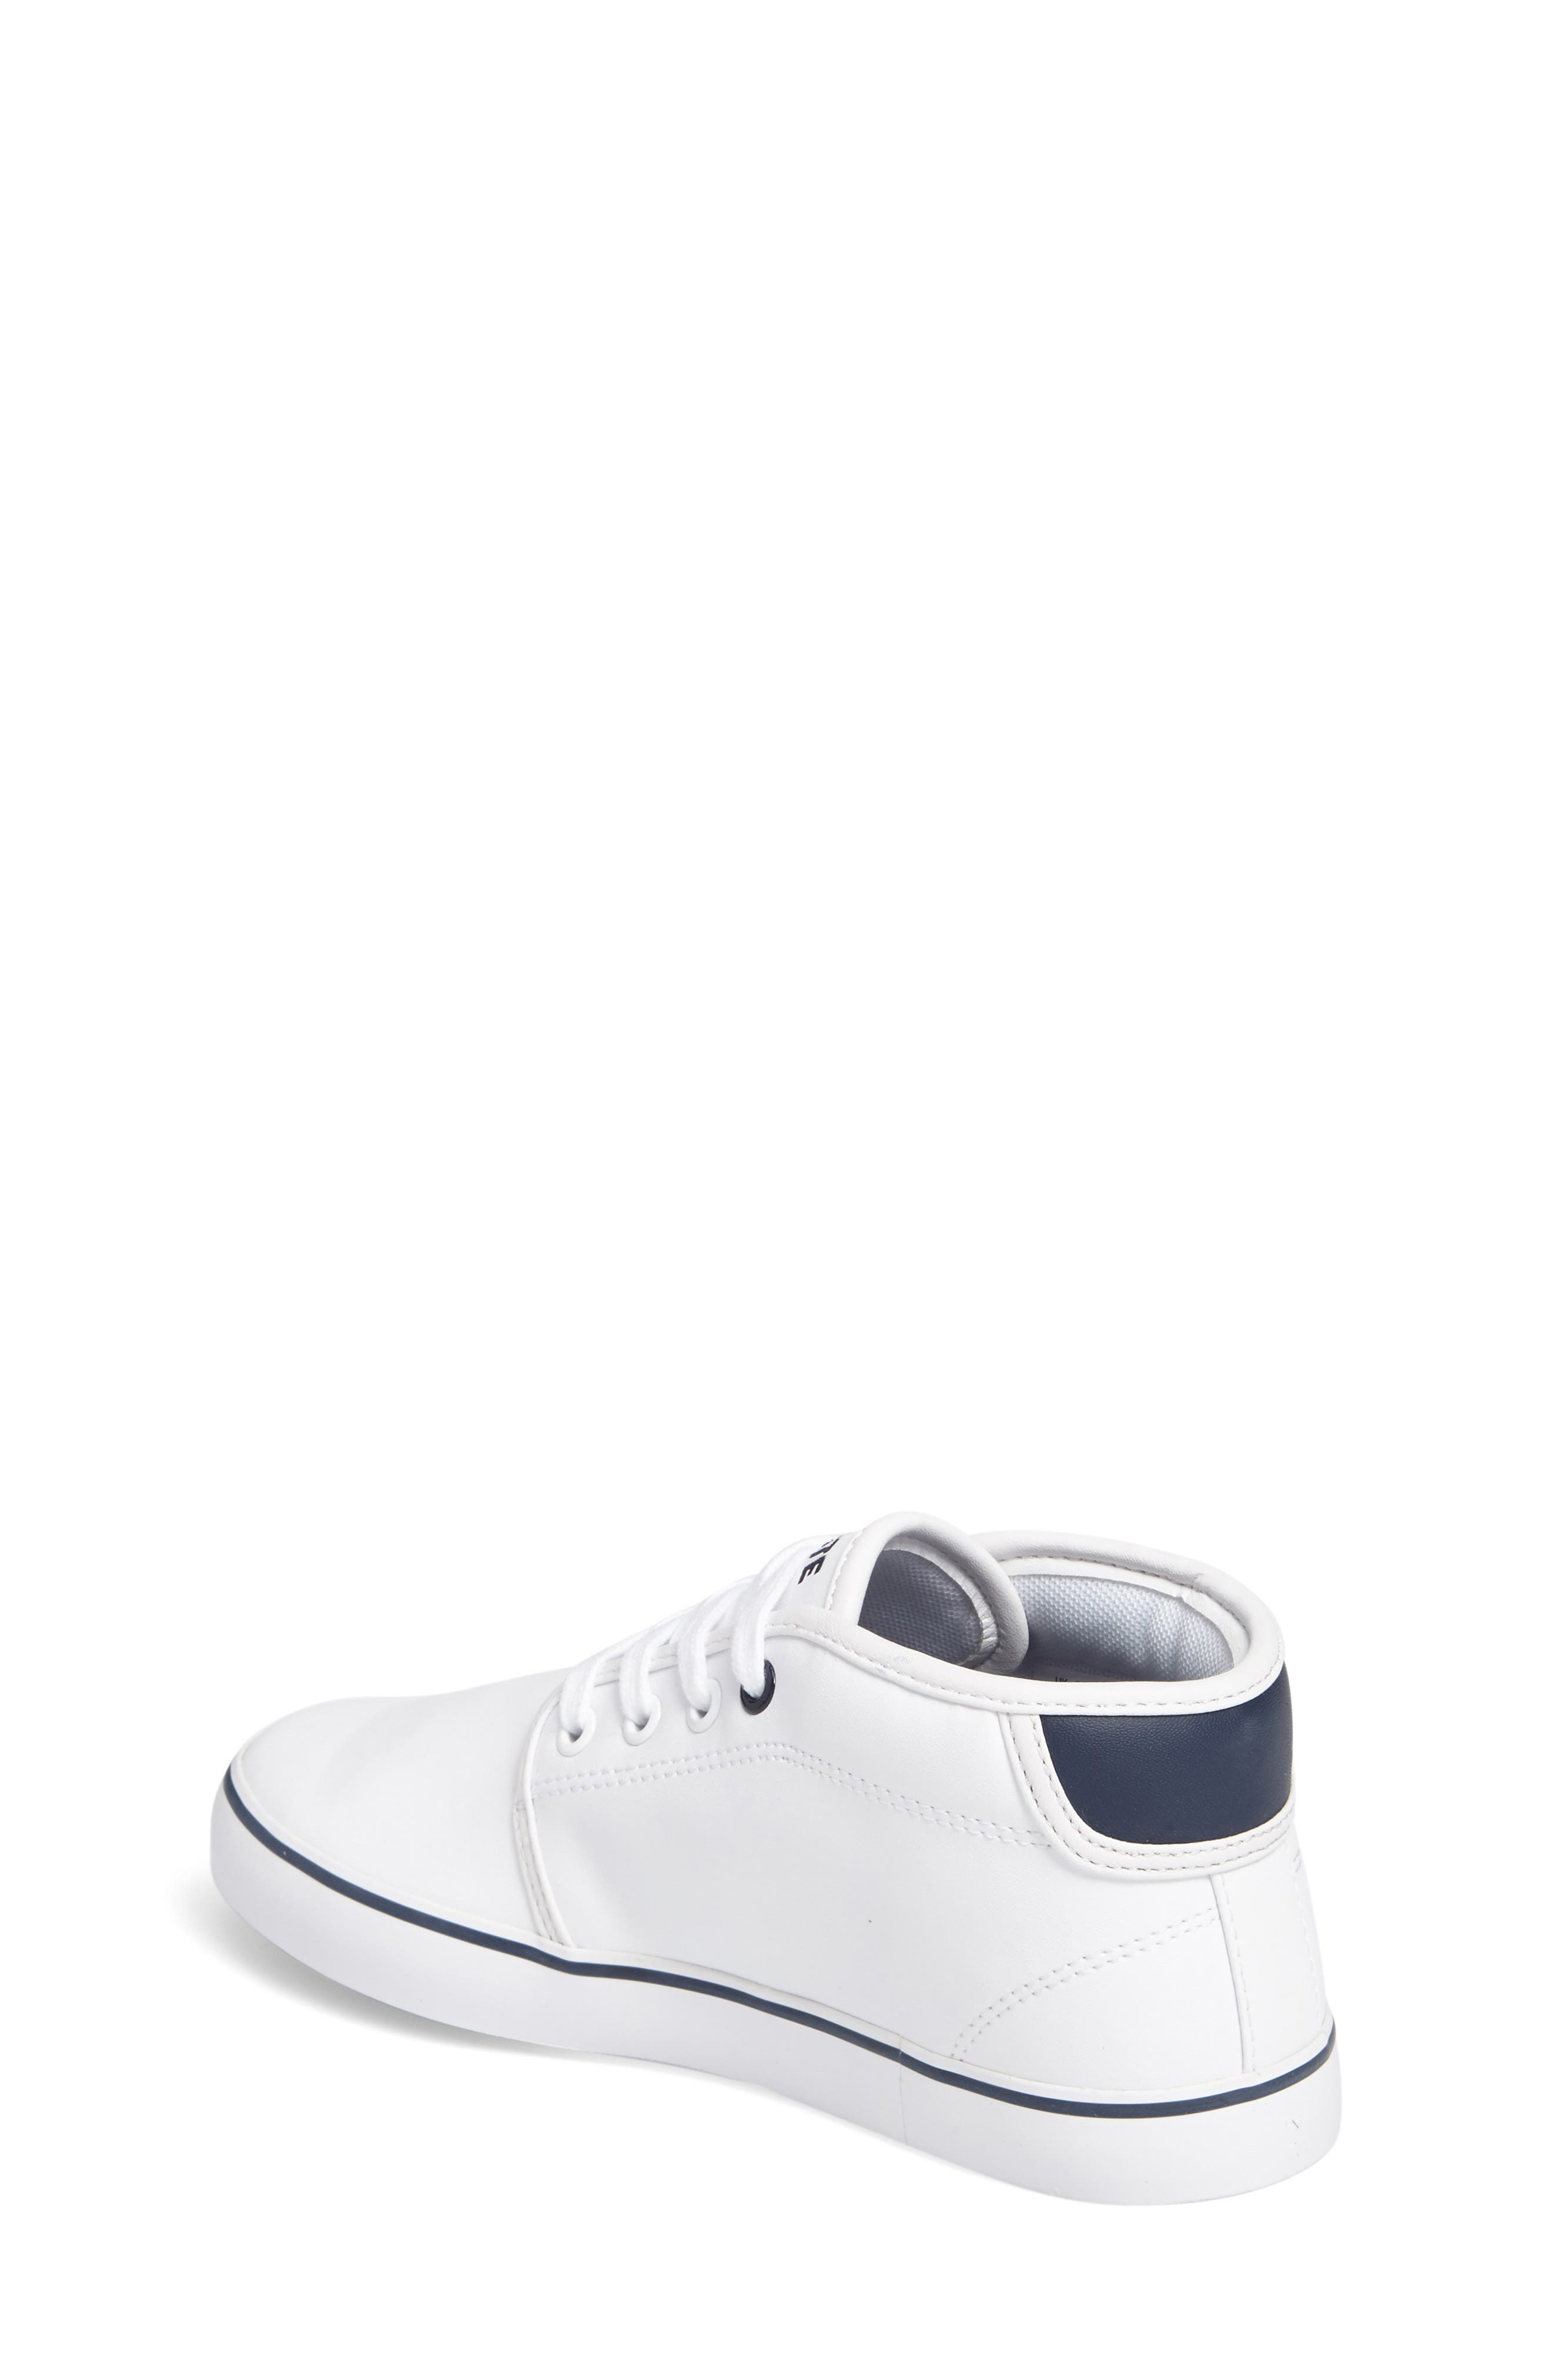 Ampthill High Top Sneaker,                             Alternate thumbnail 2, color,                             White/ Navy Faux Leather